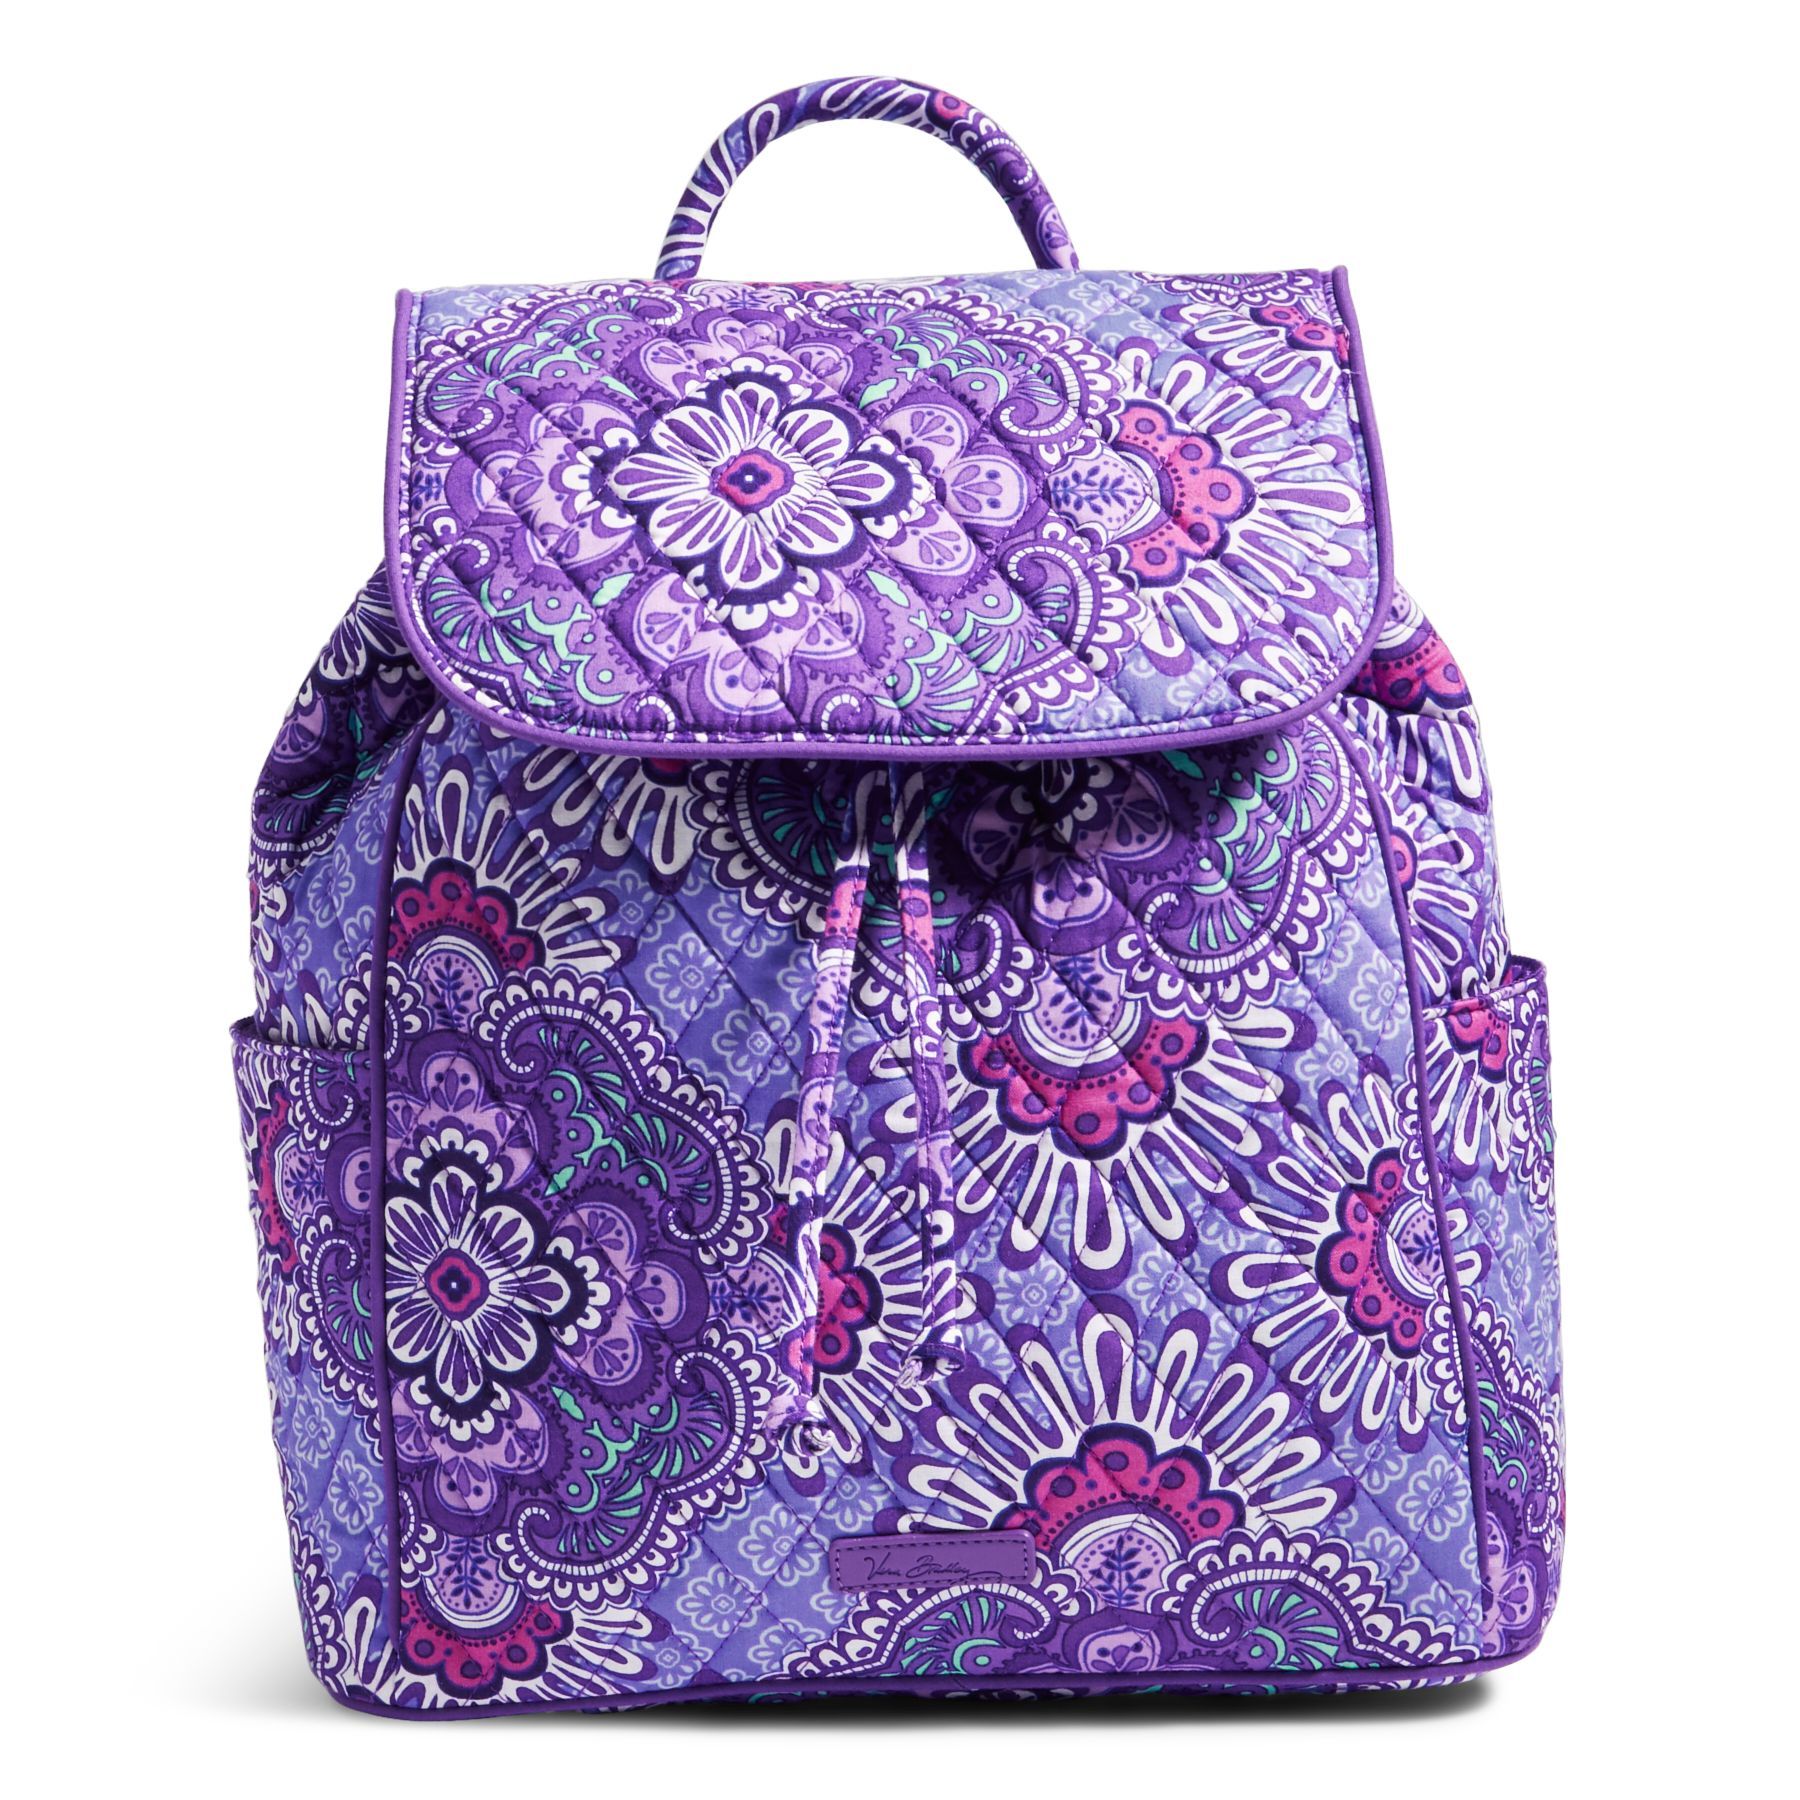 Vera Bradley Drawstring Backpack In Lilac Tapestry